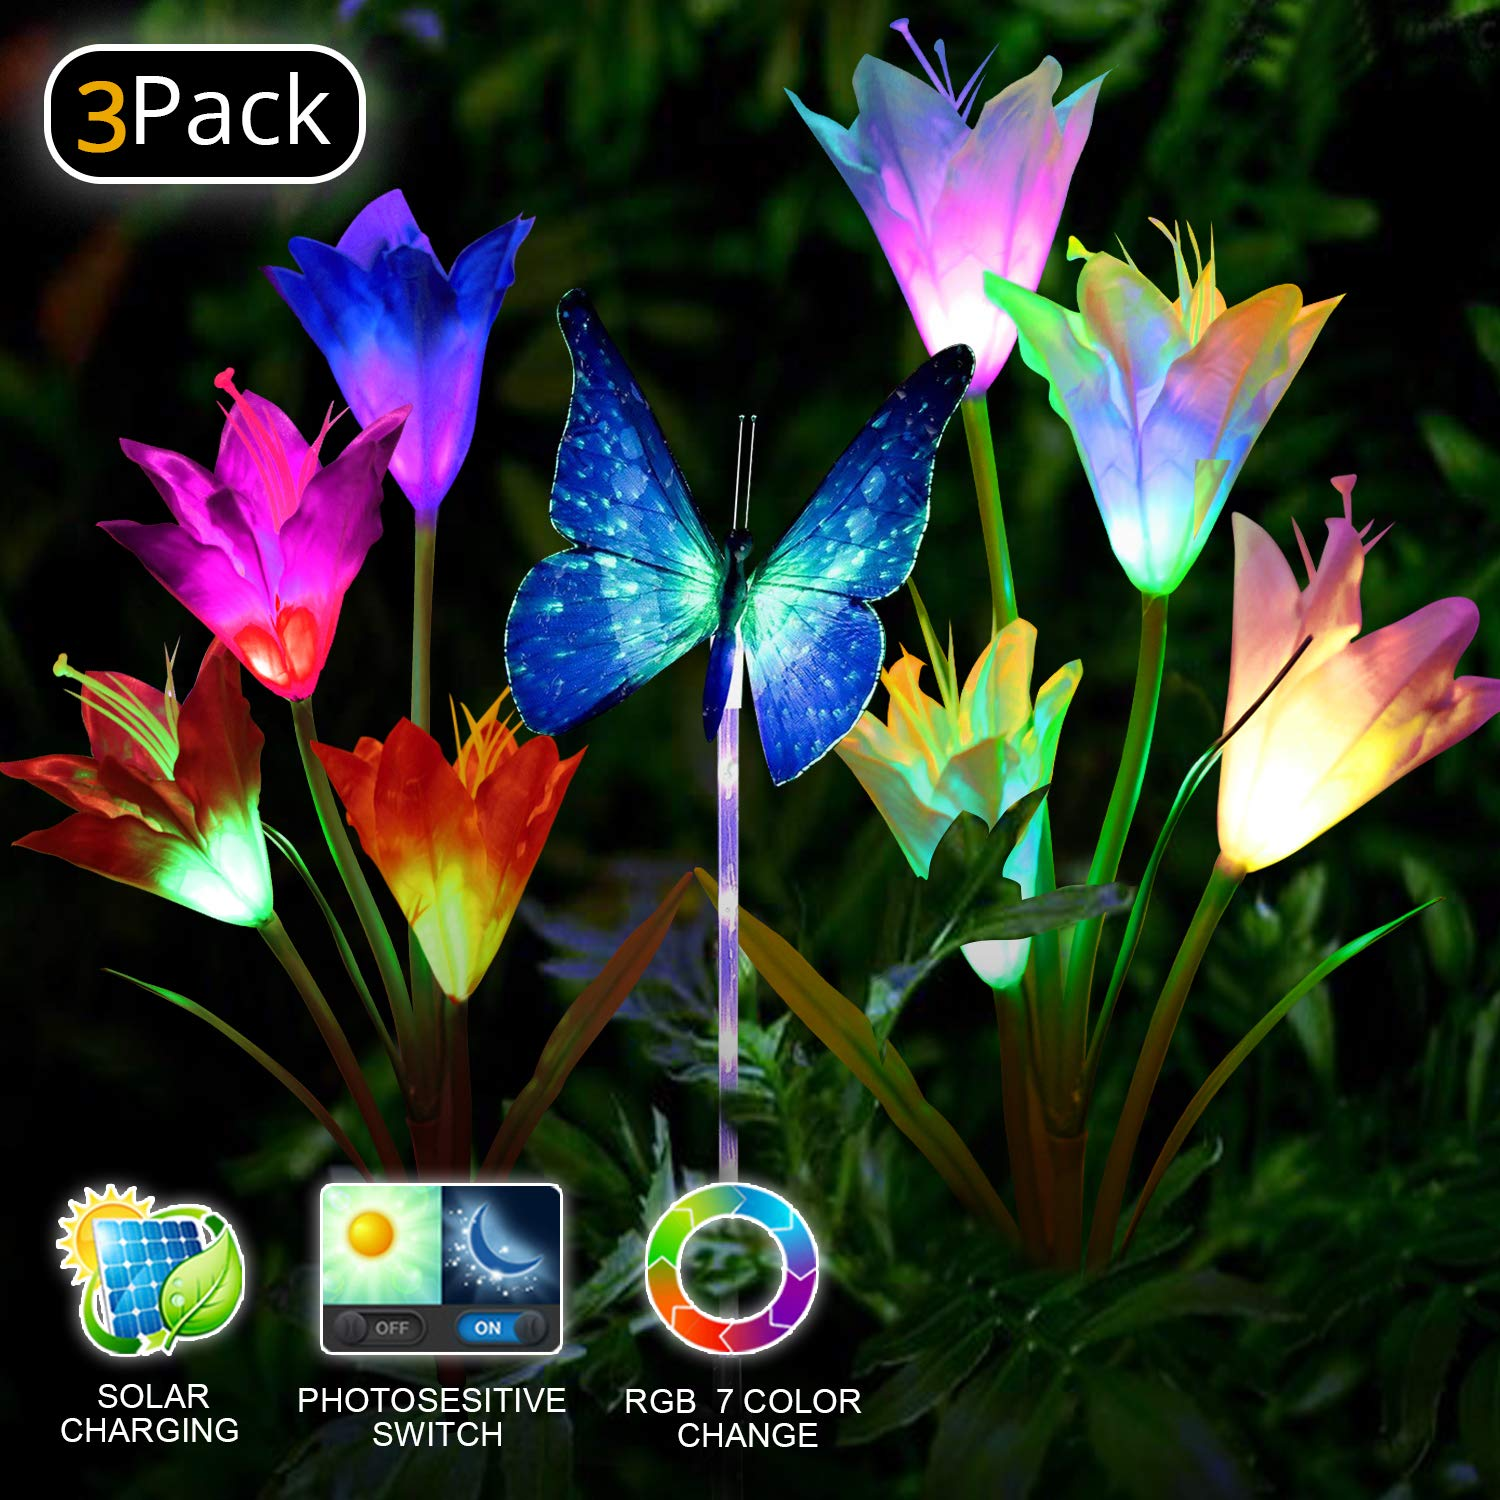 Solar Garden Lights LED Color Changing Solar Lights Outdoor Solar Powered Stake Decoration Flower Garden Lights for Garden, Patio, Backyard3pack(2 Lilly Flowers and 1 Butterfly)